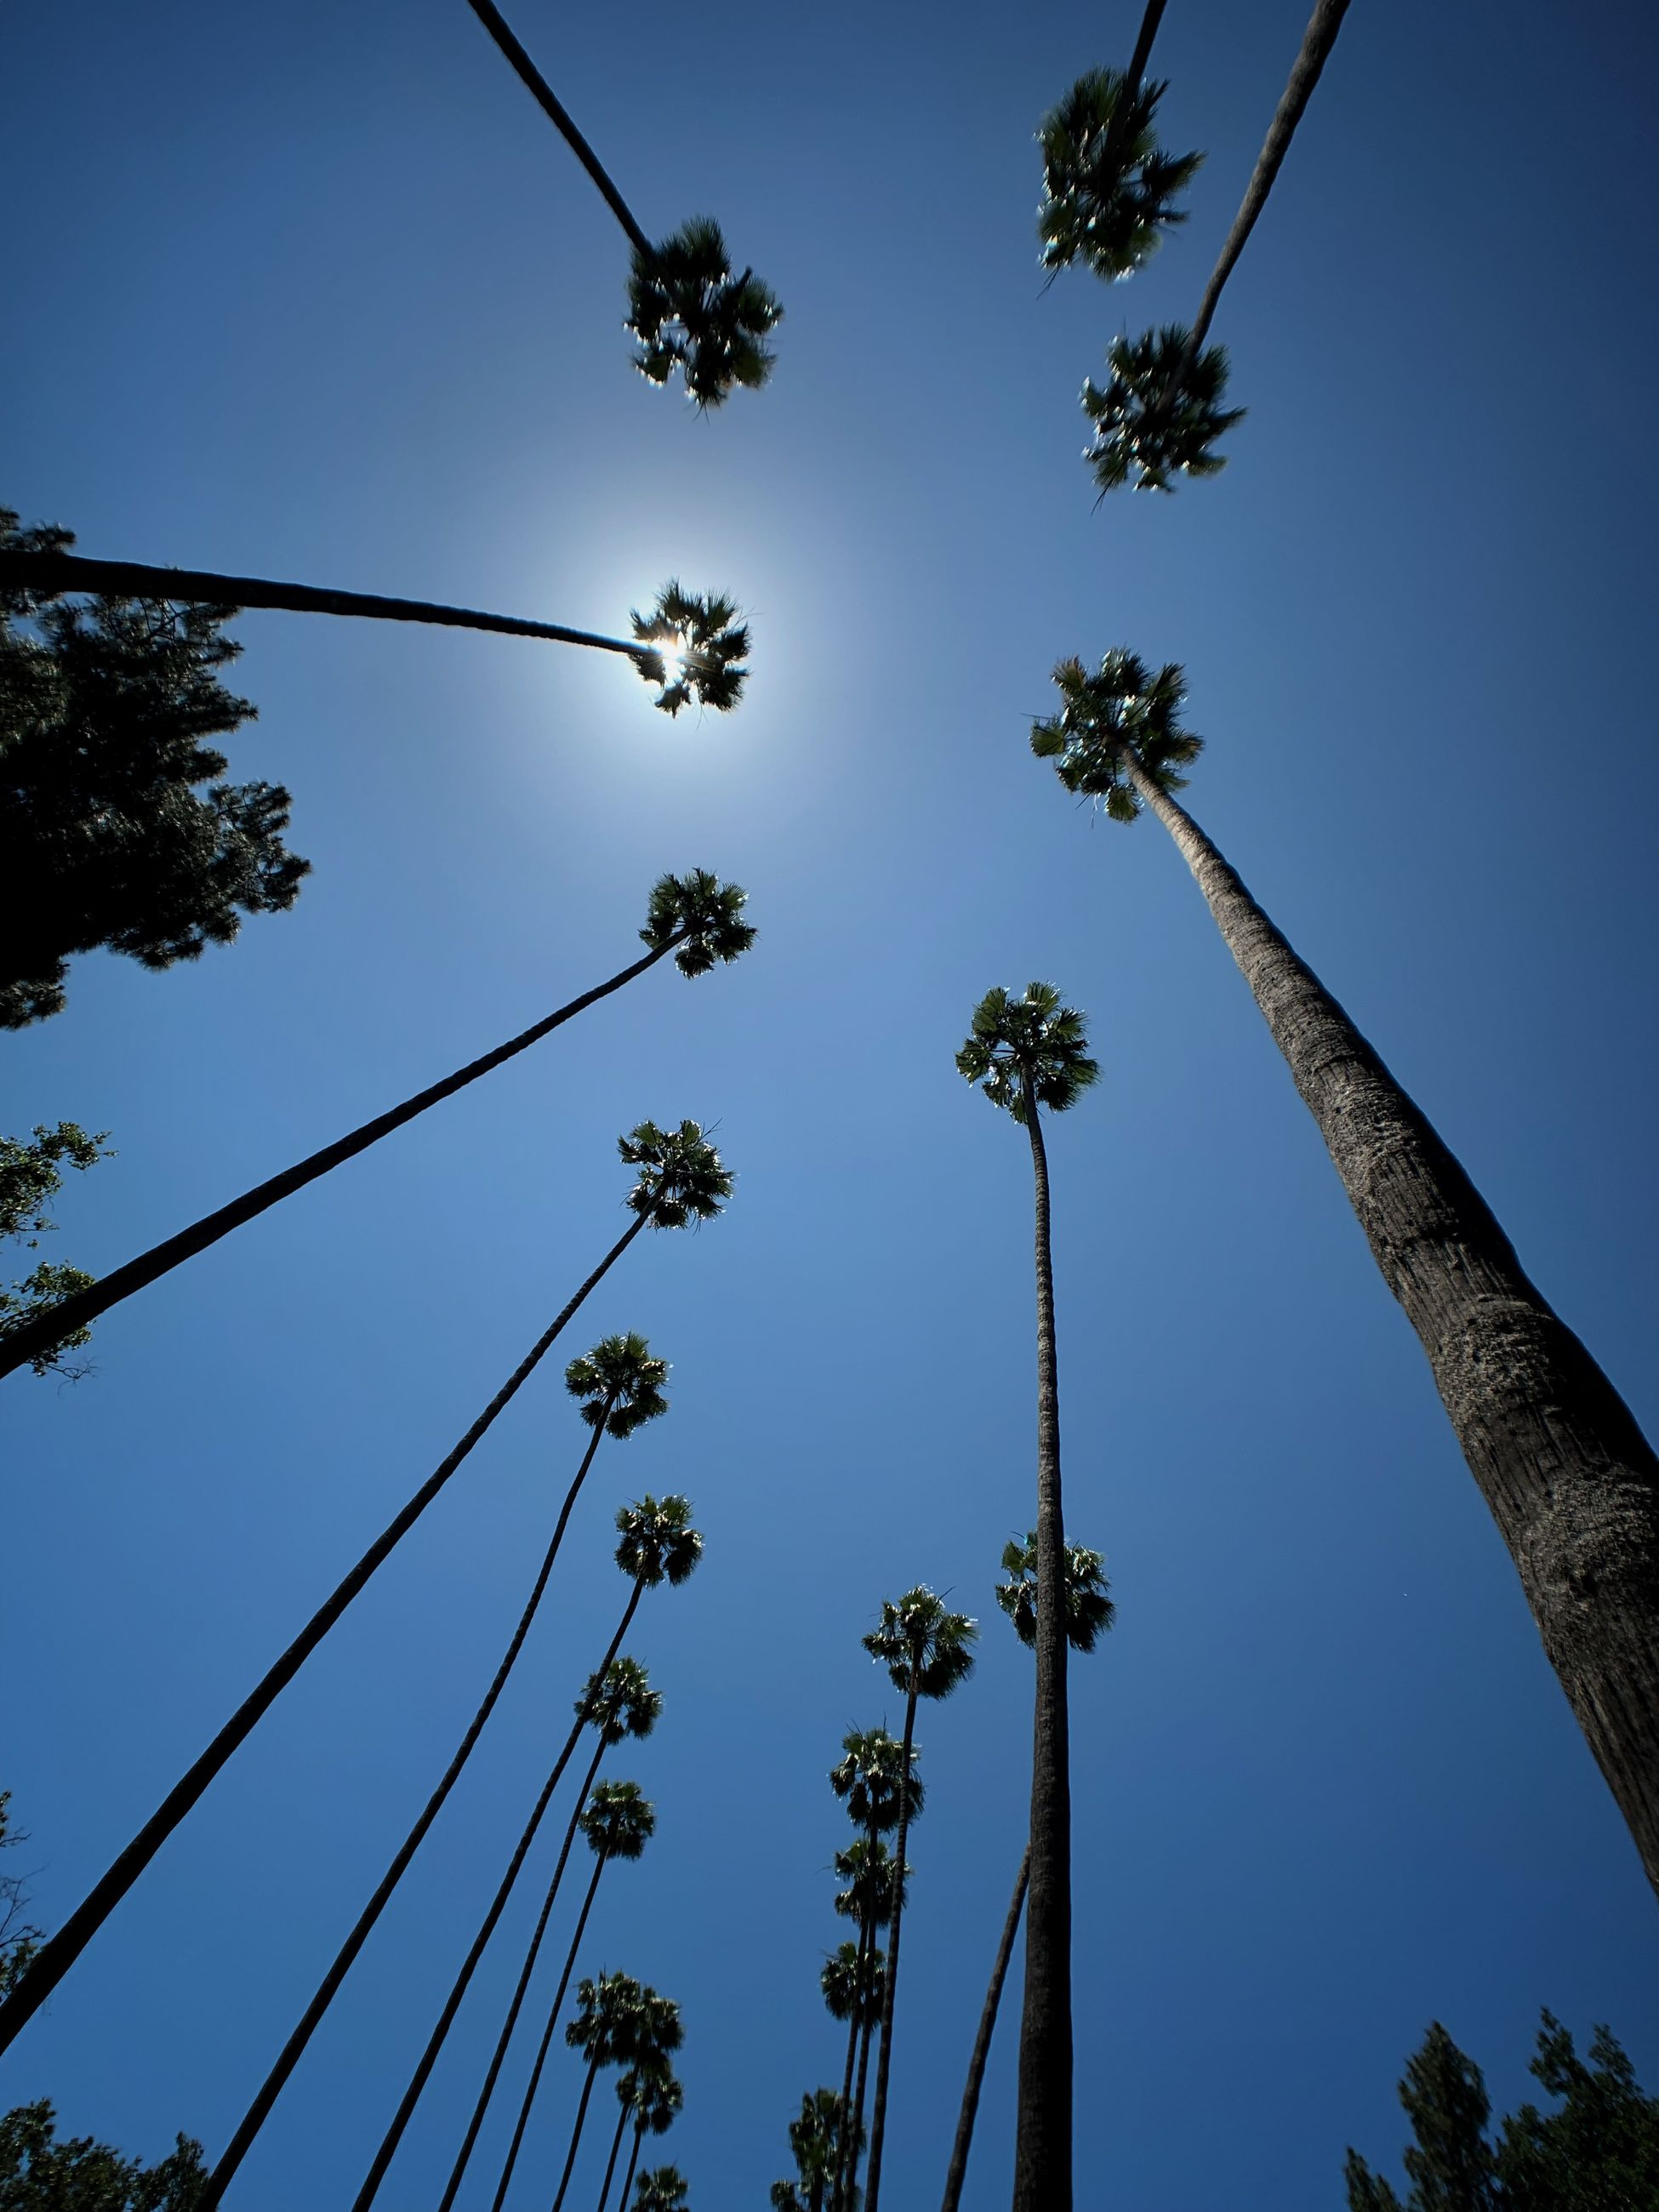 plant, tree, sky, low angle view, growth, clear sky, nature, tall - high, beauty in nature, no people, tree trunk, outdoors, trunk, day, blue, tranquility, branch, palm tree, tropical climate, silhouette, directly below, coconut palm tree